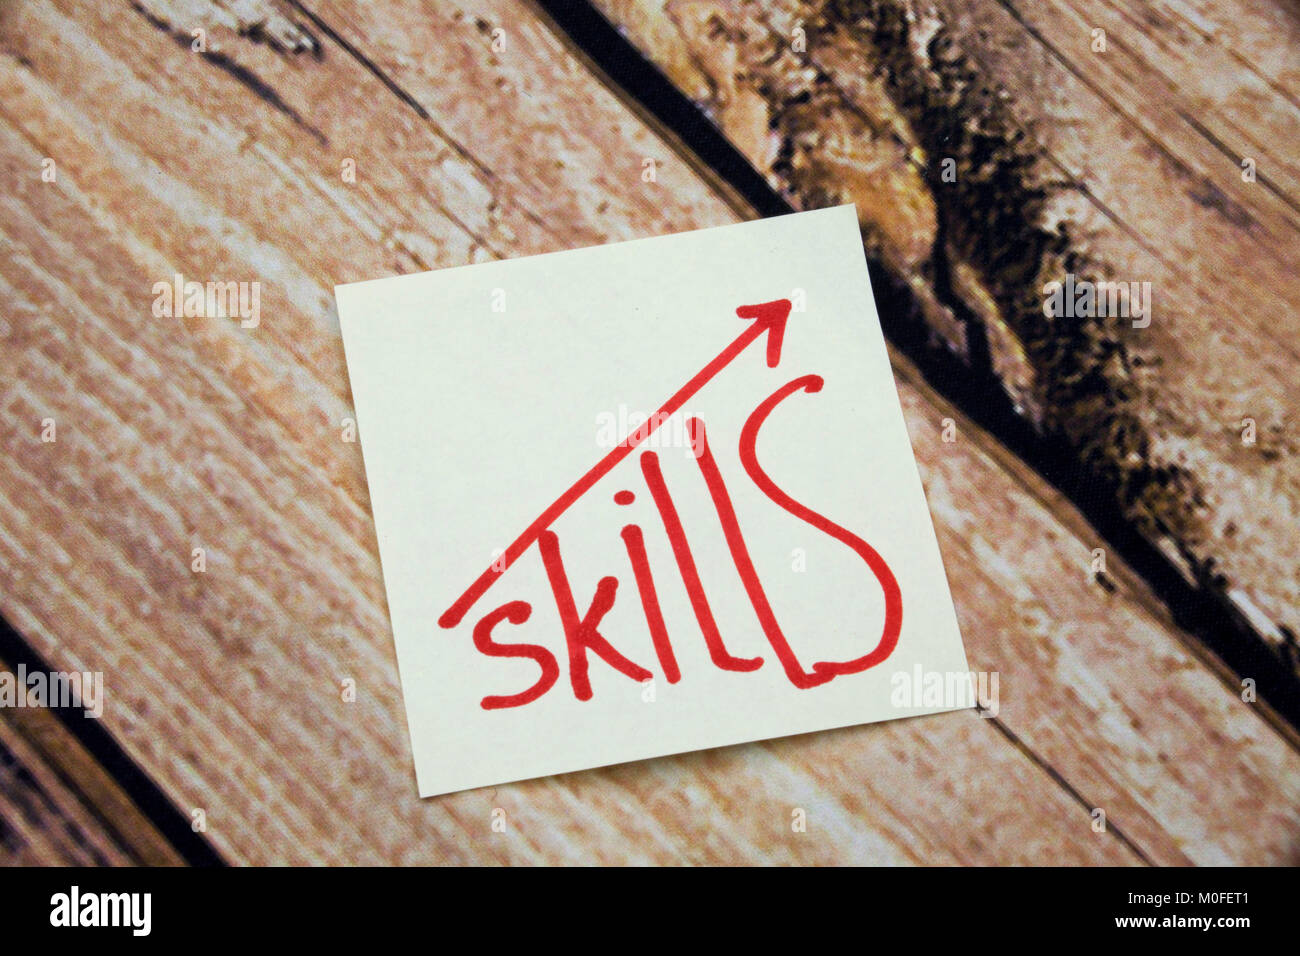 Skills written on sticky note on the wooden table Improve Your skills Concept - Stock Image